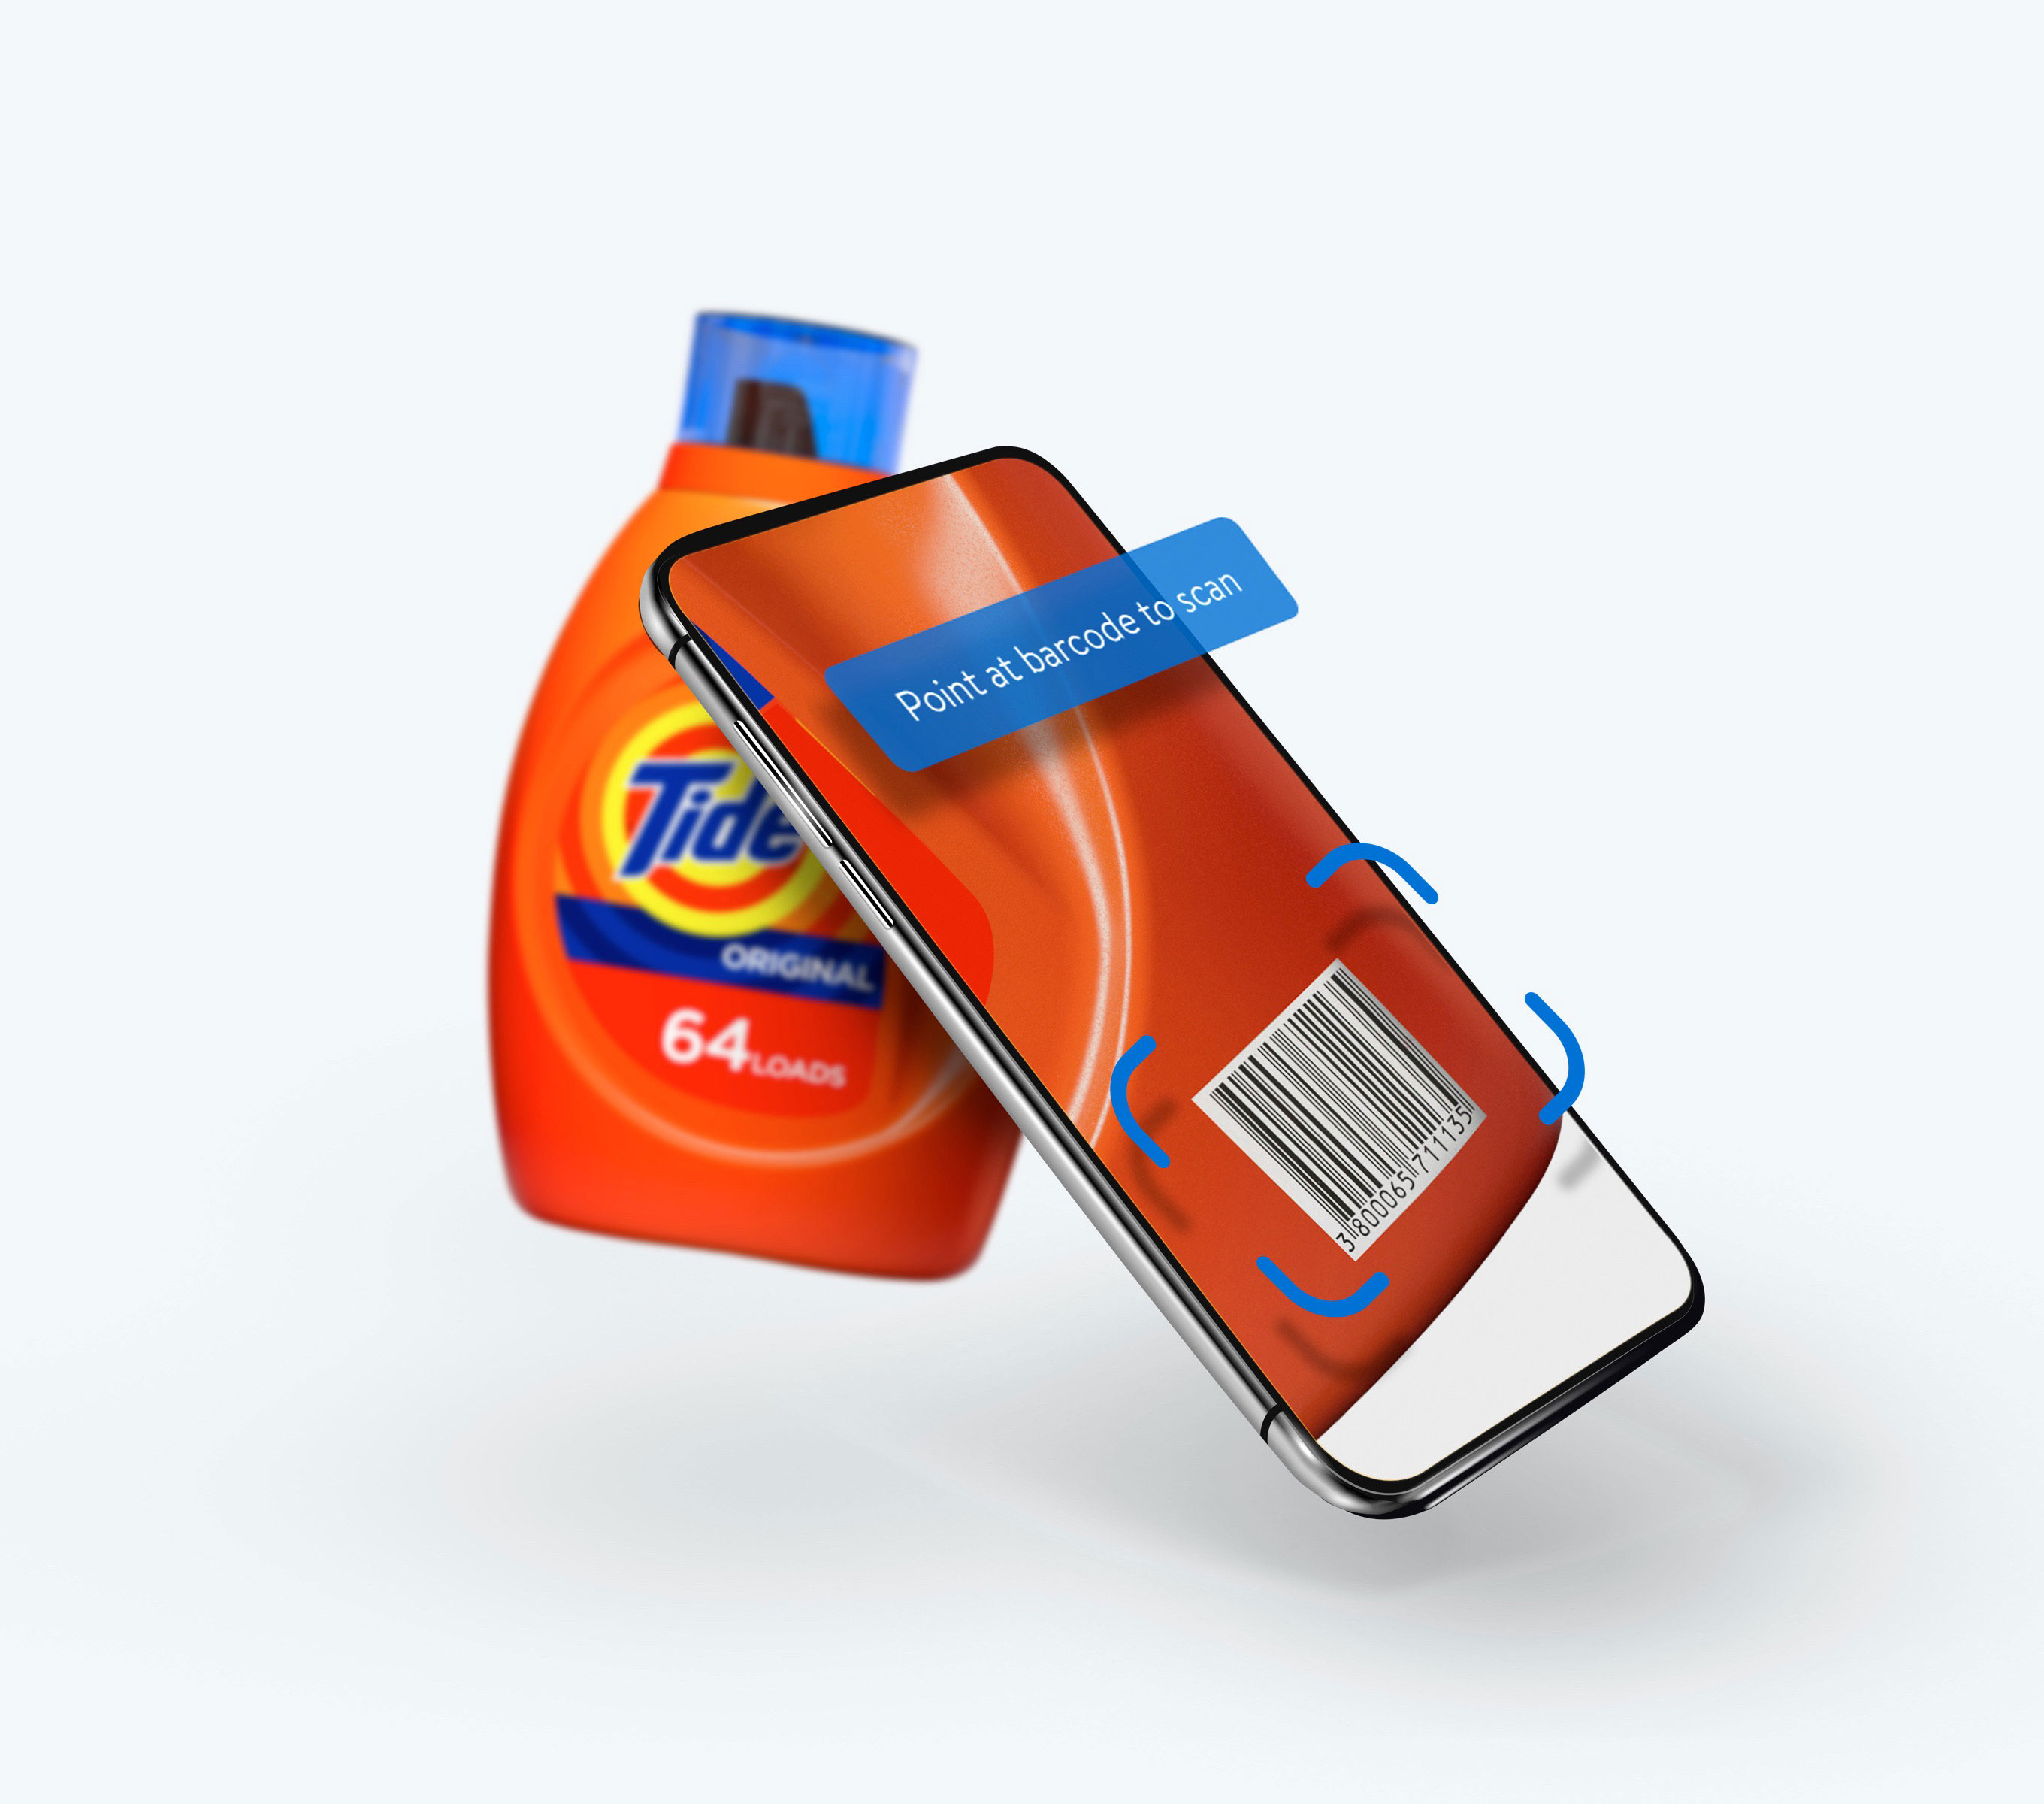 Mobile scan & go